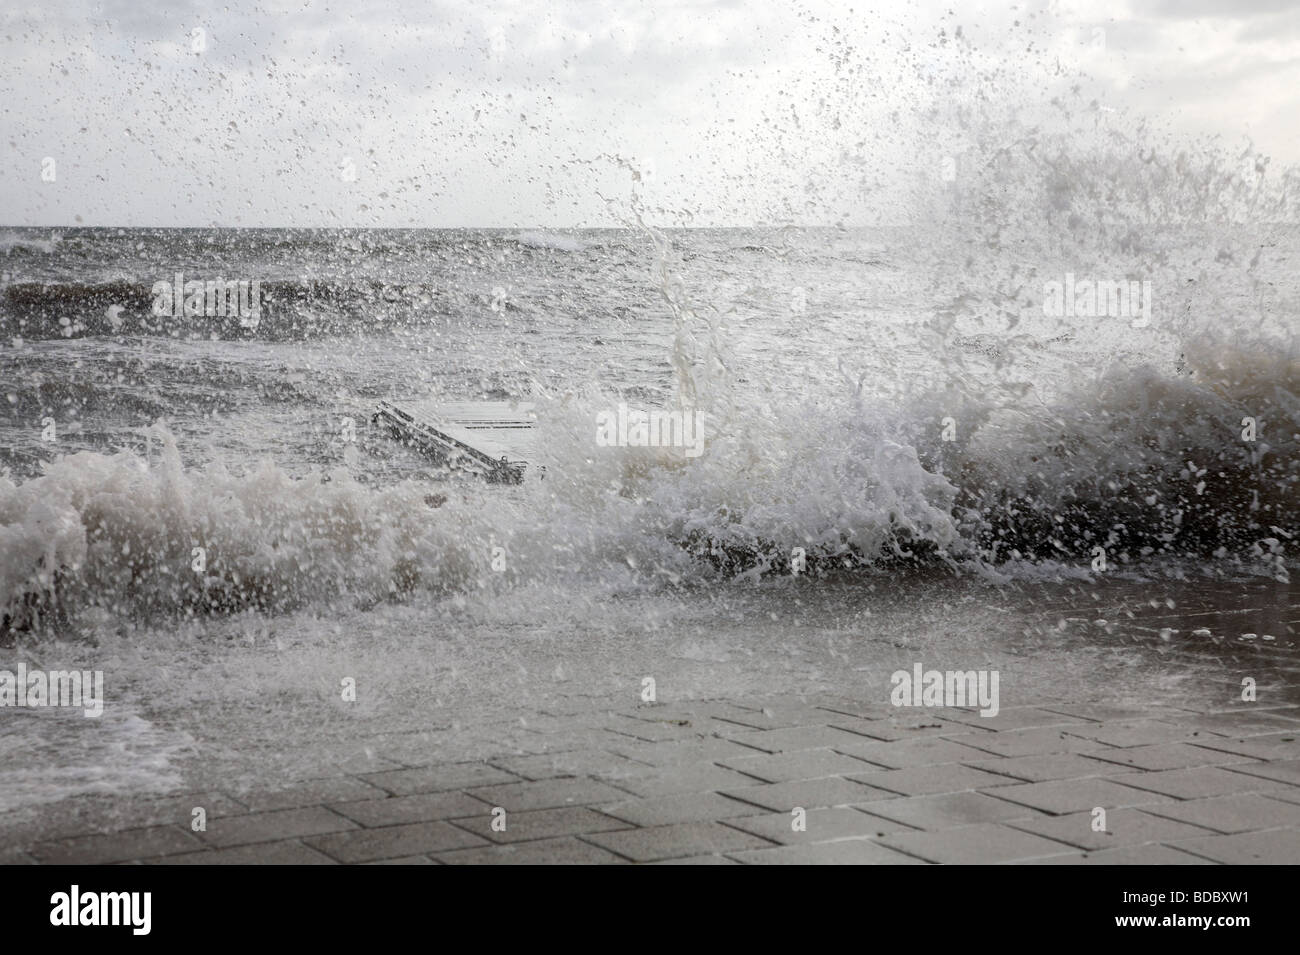 Storm and flooding late summer in the Sound at Rungsted Kyst, Denmark. - Stock Image